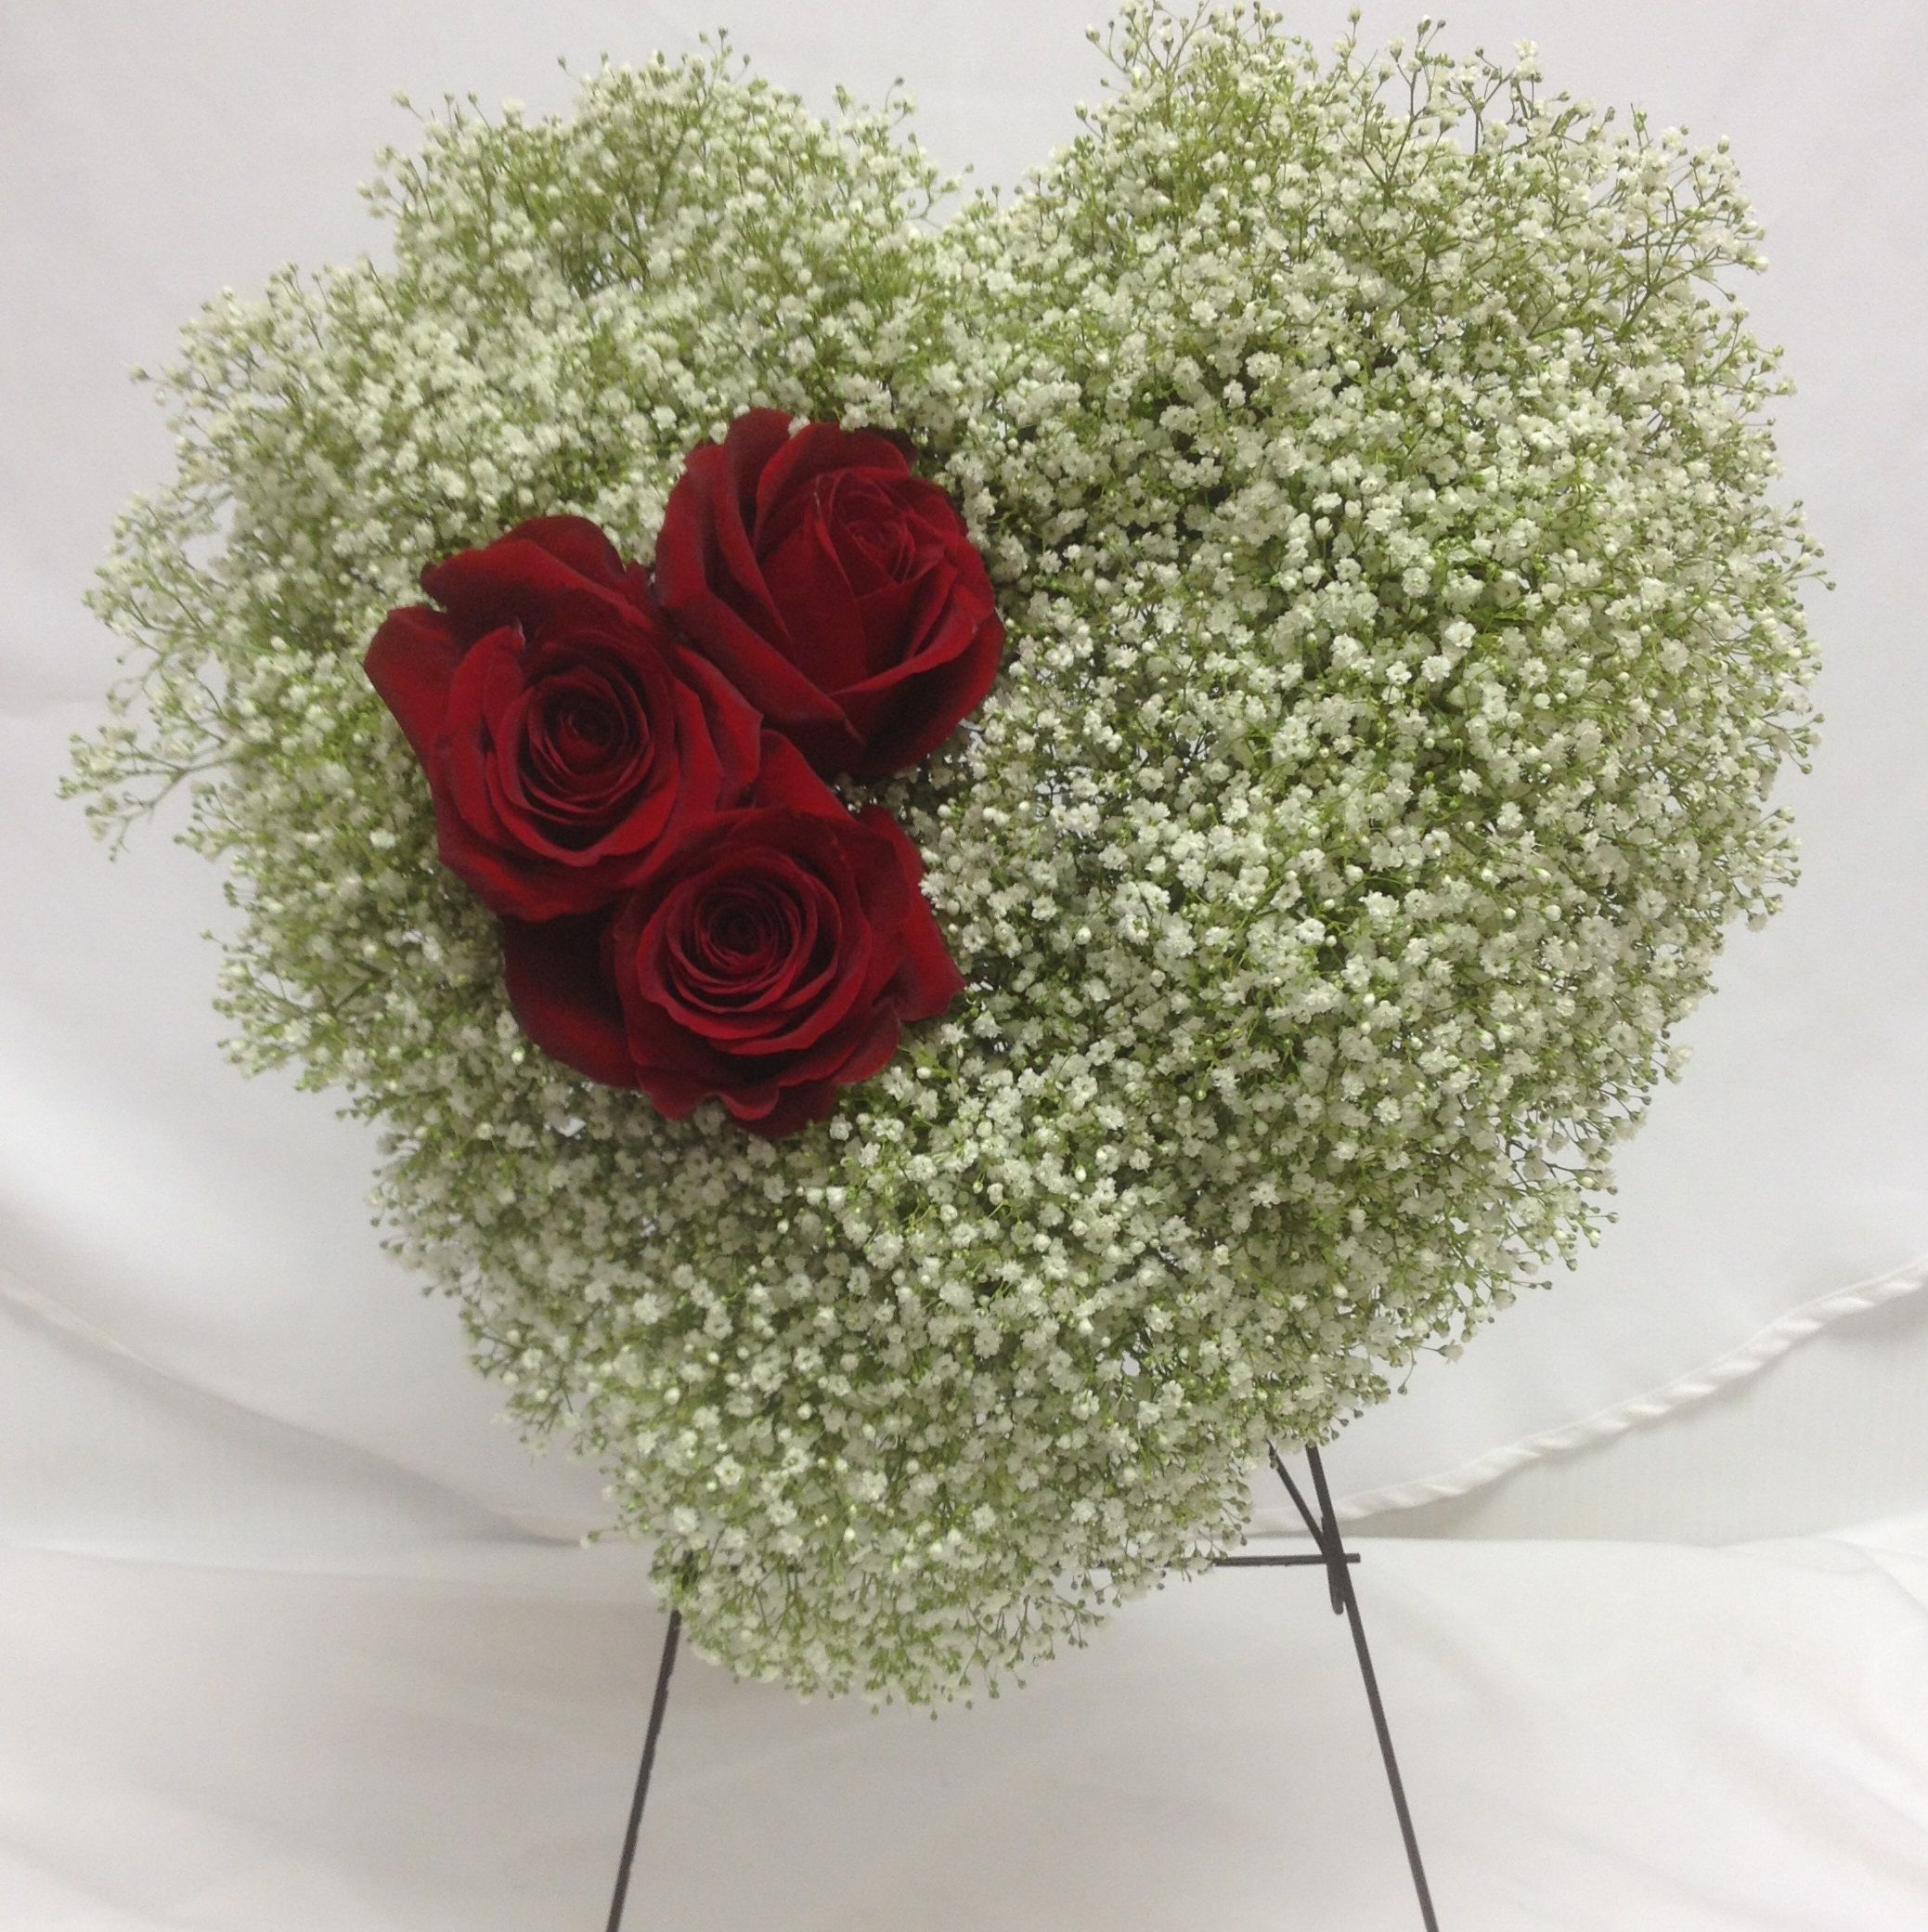 A small yet beautiful heart of babies breath with large red roses order flowers safely and securely online from summerhill florist ltd our arrangements are artfully designed with fresh flowers and hand delivered izmirmasajfo